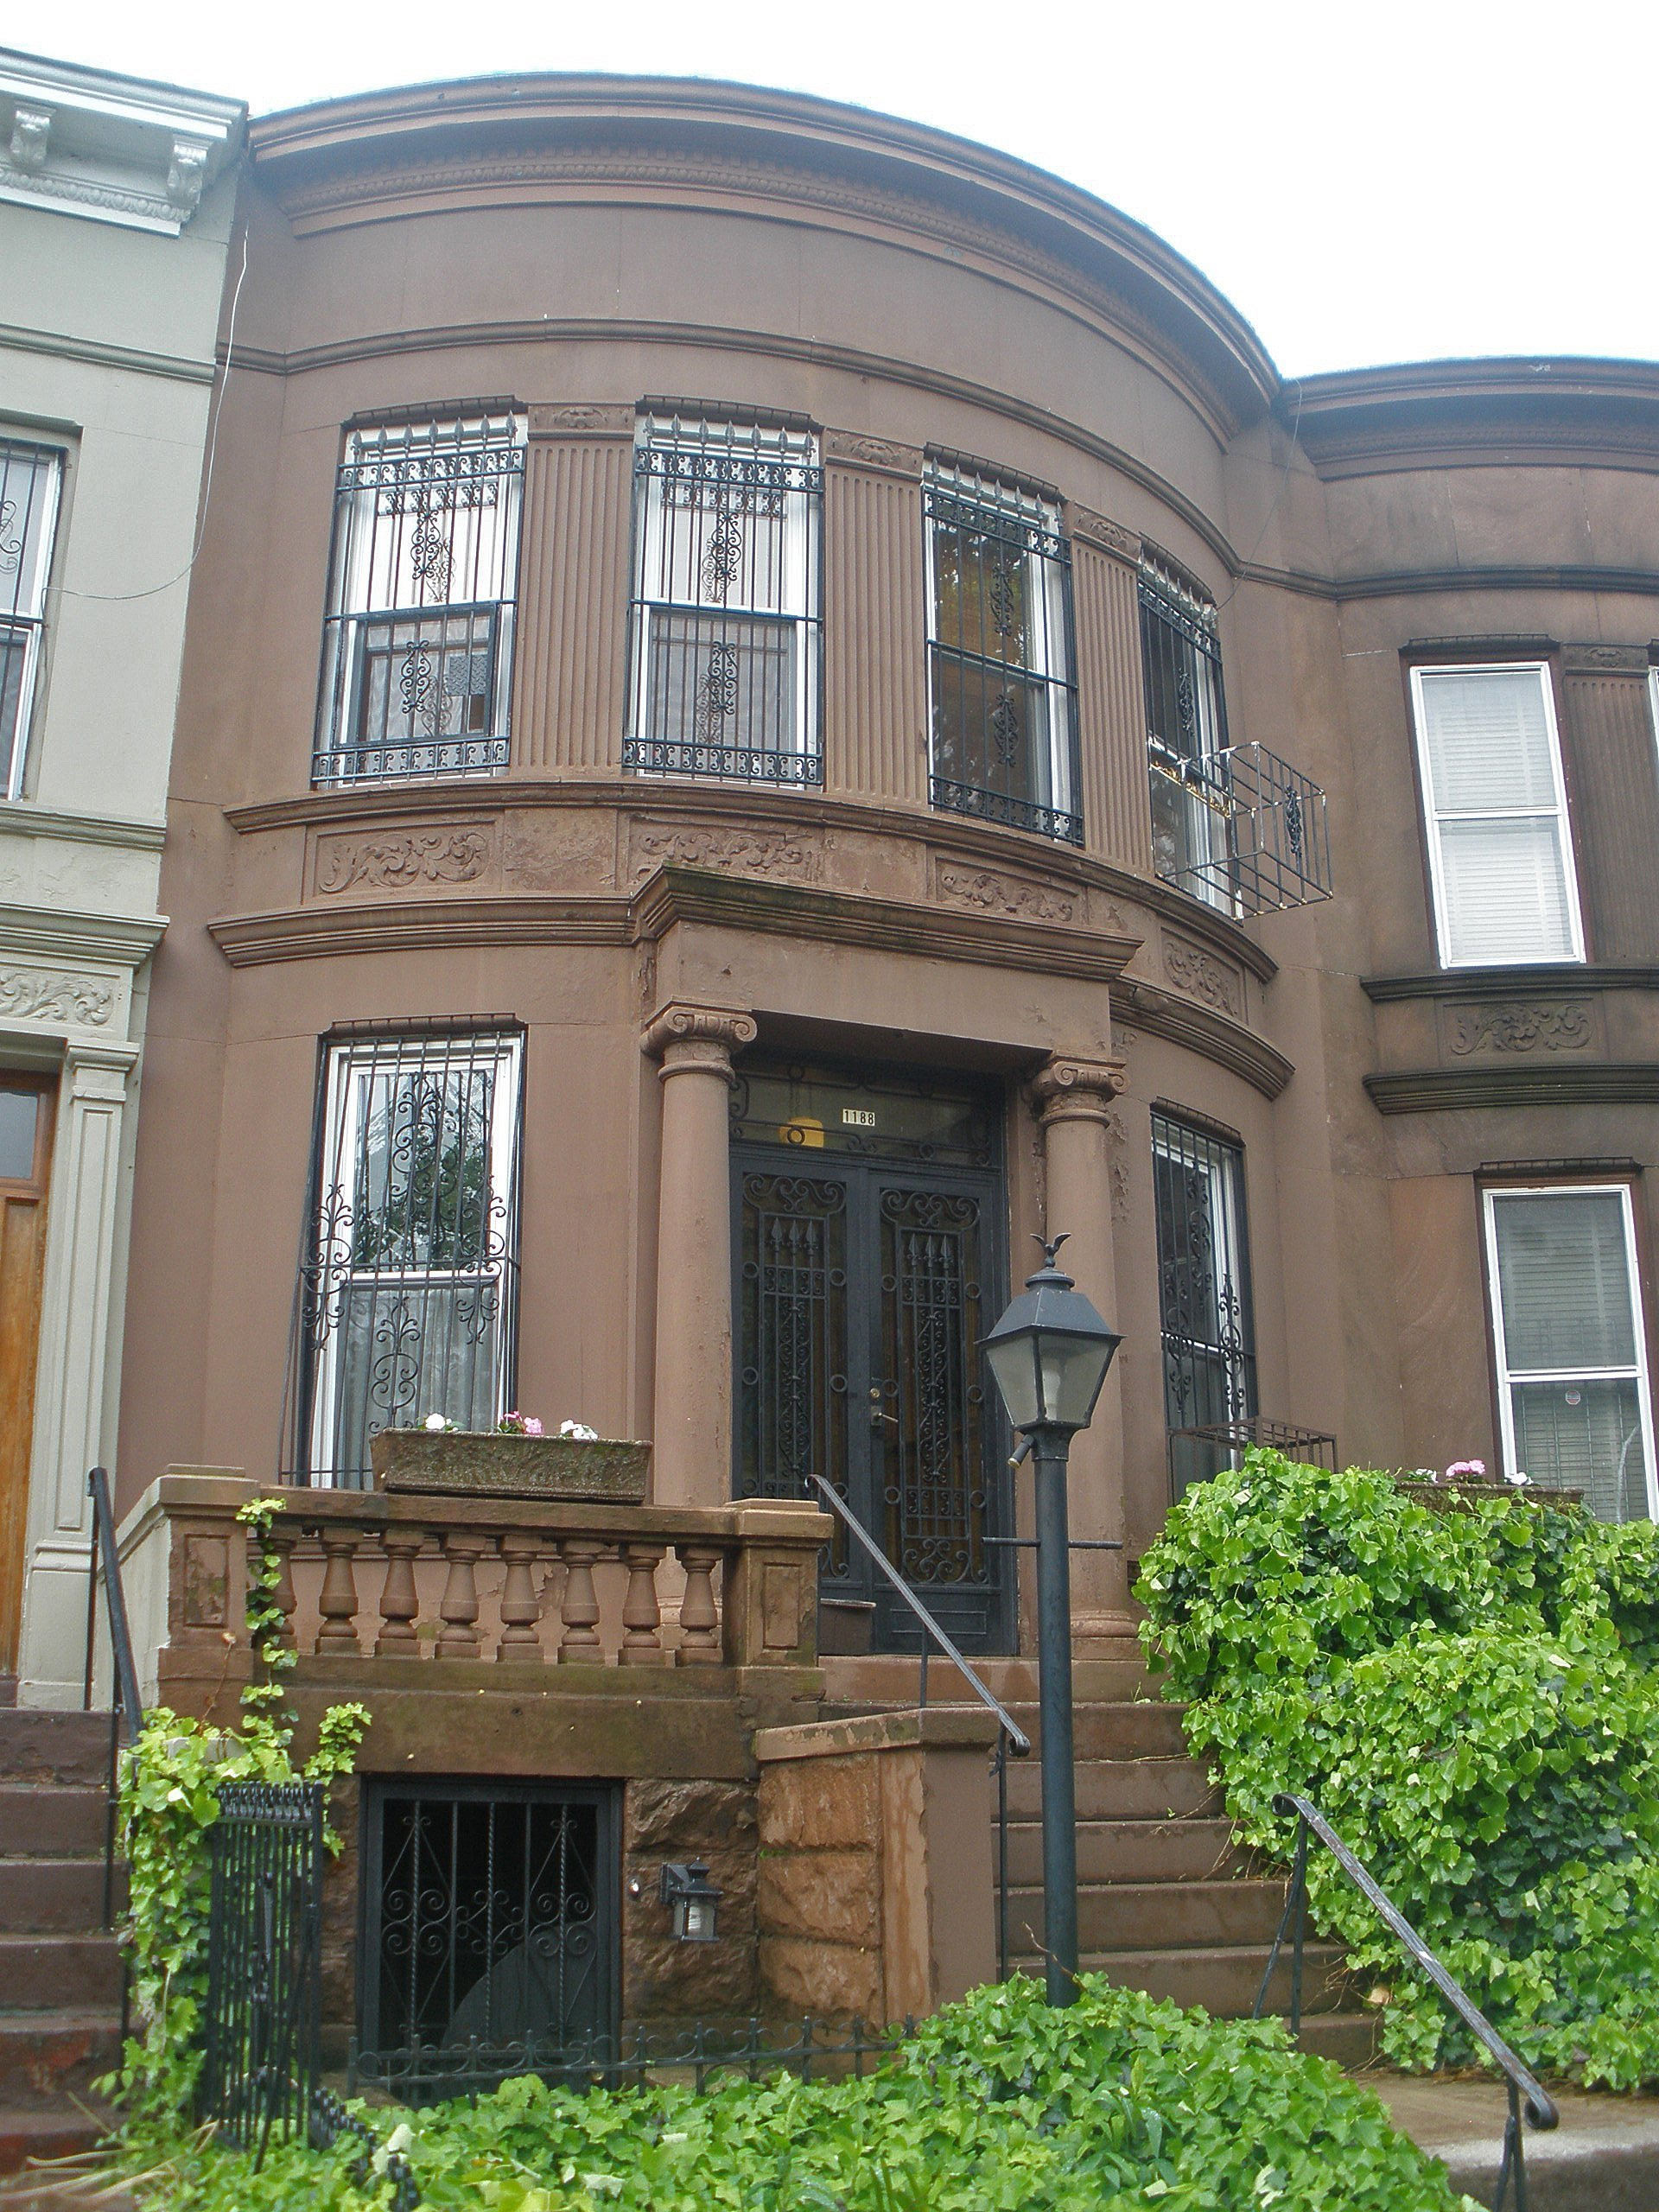 Crown heights single family brownstone for sale brooklyn for Buy house in brooklyn